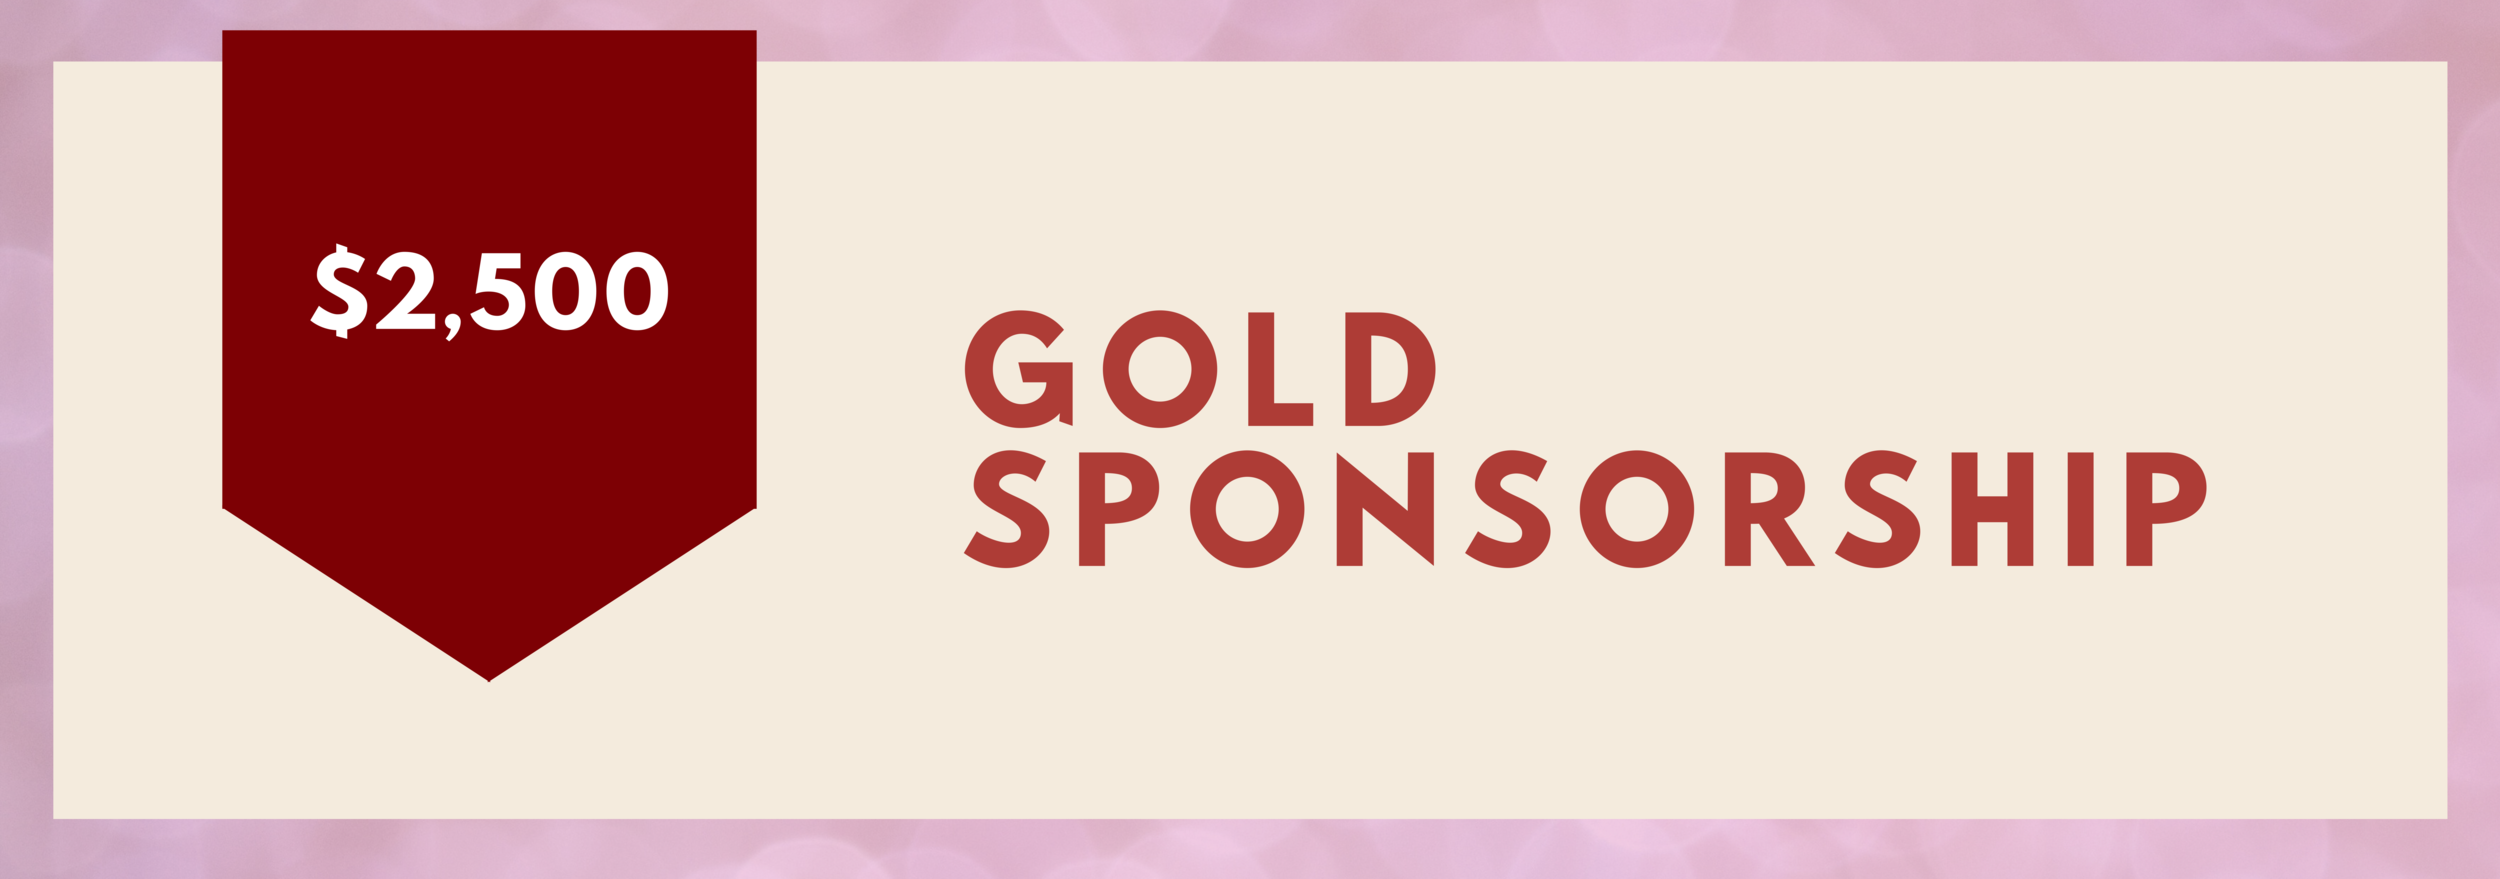 Gold Sponsorship - $2,500   • Logo in monthly email newsletter • Recognition post on social media • Acknowledgement in press release materials • Logo on ticket sale site • Logo on promotional posters • Logo on day of promotional materials • Logo on event invitations • Half page ad in gala program • Logo on-screen displays • Logo on red carpet backdrop, and photo booth takeaways • (4) Passes to VIP Private Reception • Table of Ten to the Awards Gala